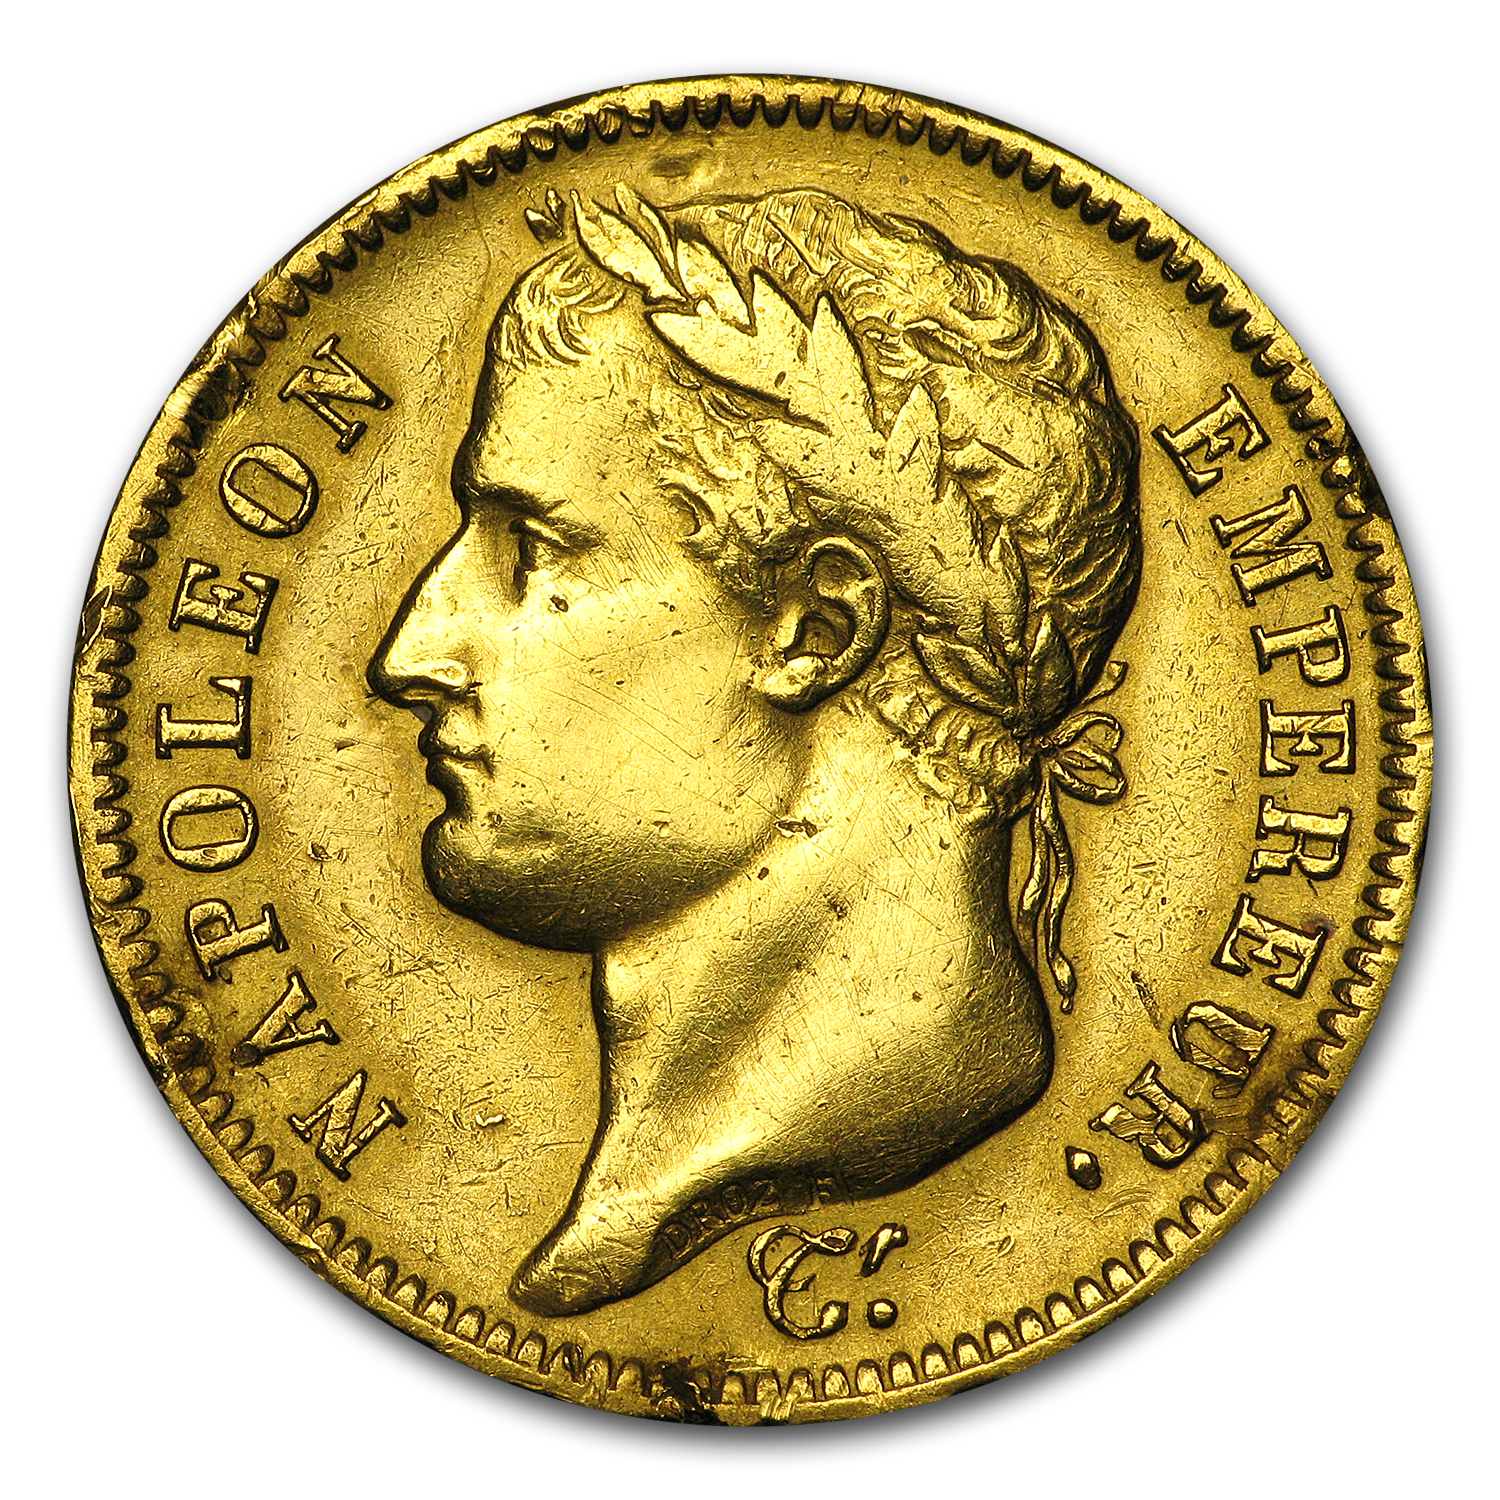 France 1807-1813 Gold 40 Francs of Napoleon I (Scruffy)